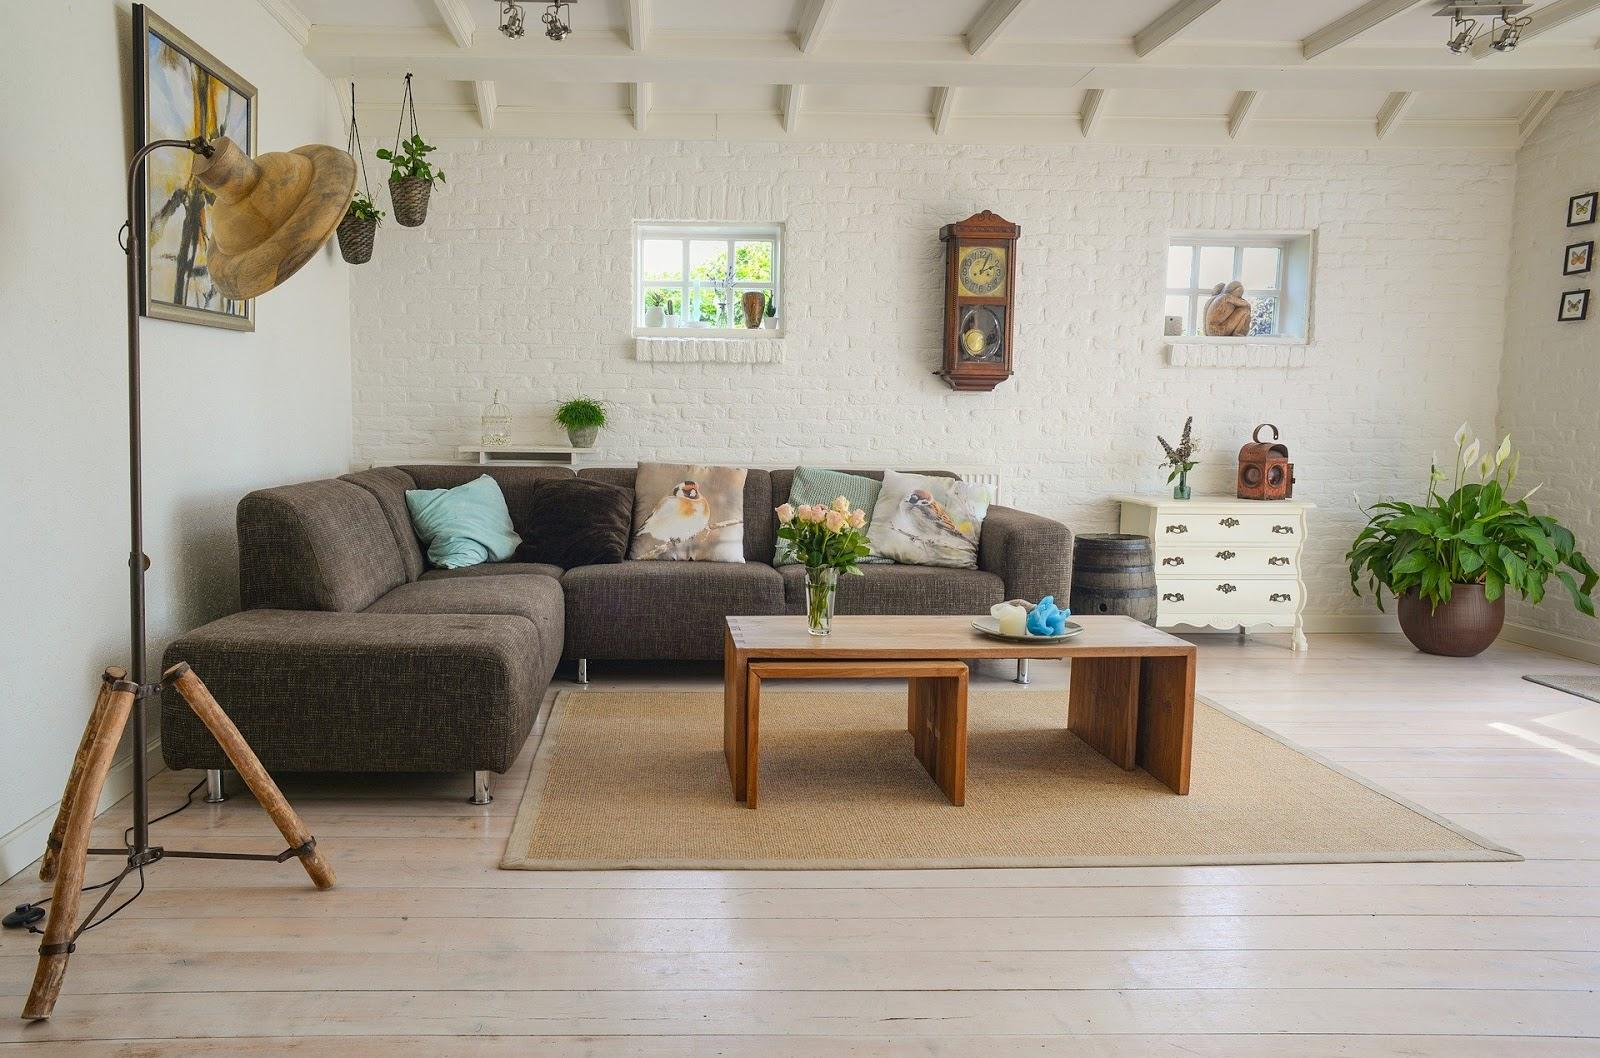 10 Home Decor Ideas That Will Make it Harder to Sell Your Home